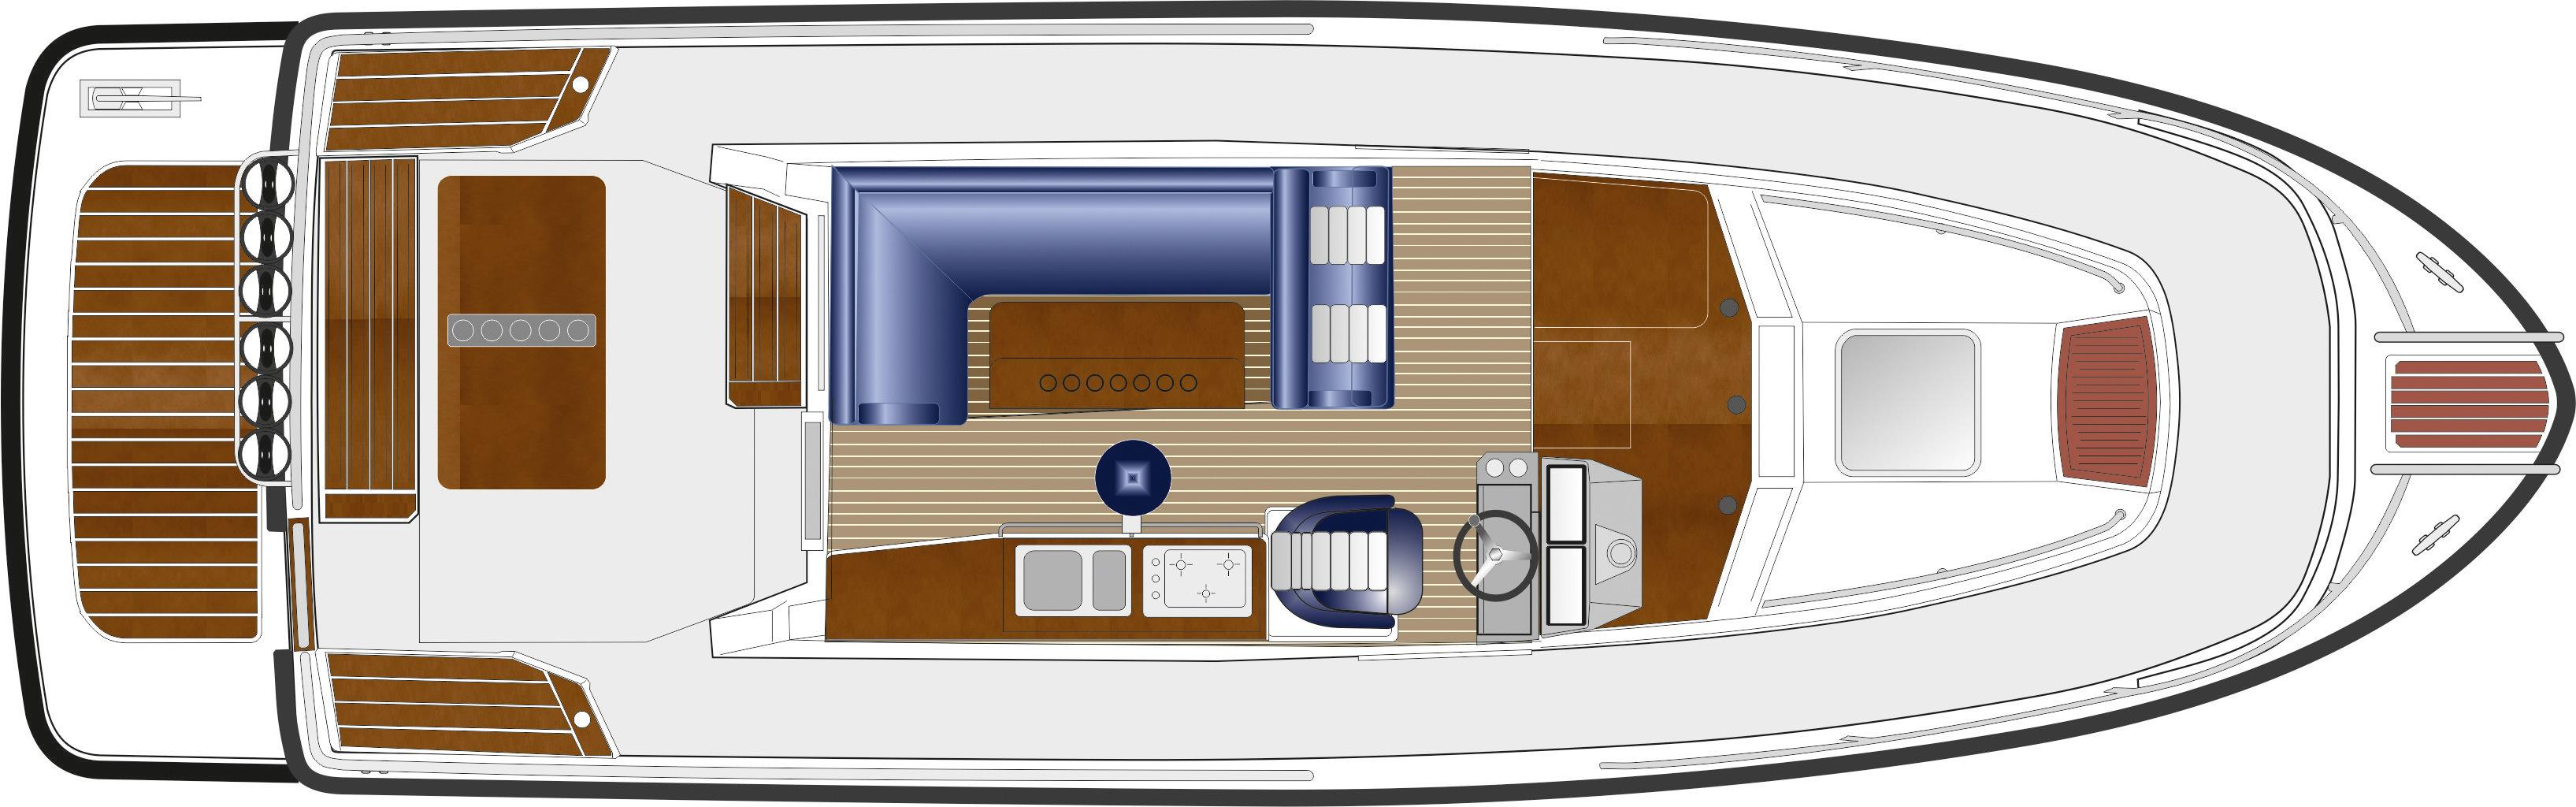 Sargo 33 Explorer - internal deck plan